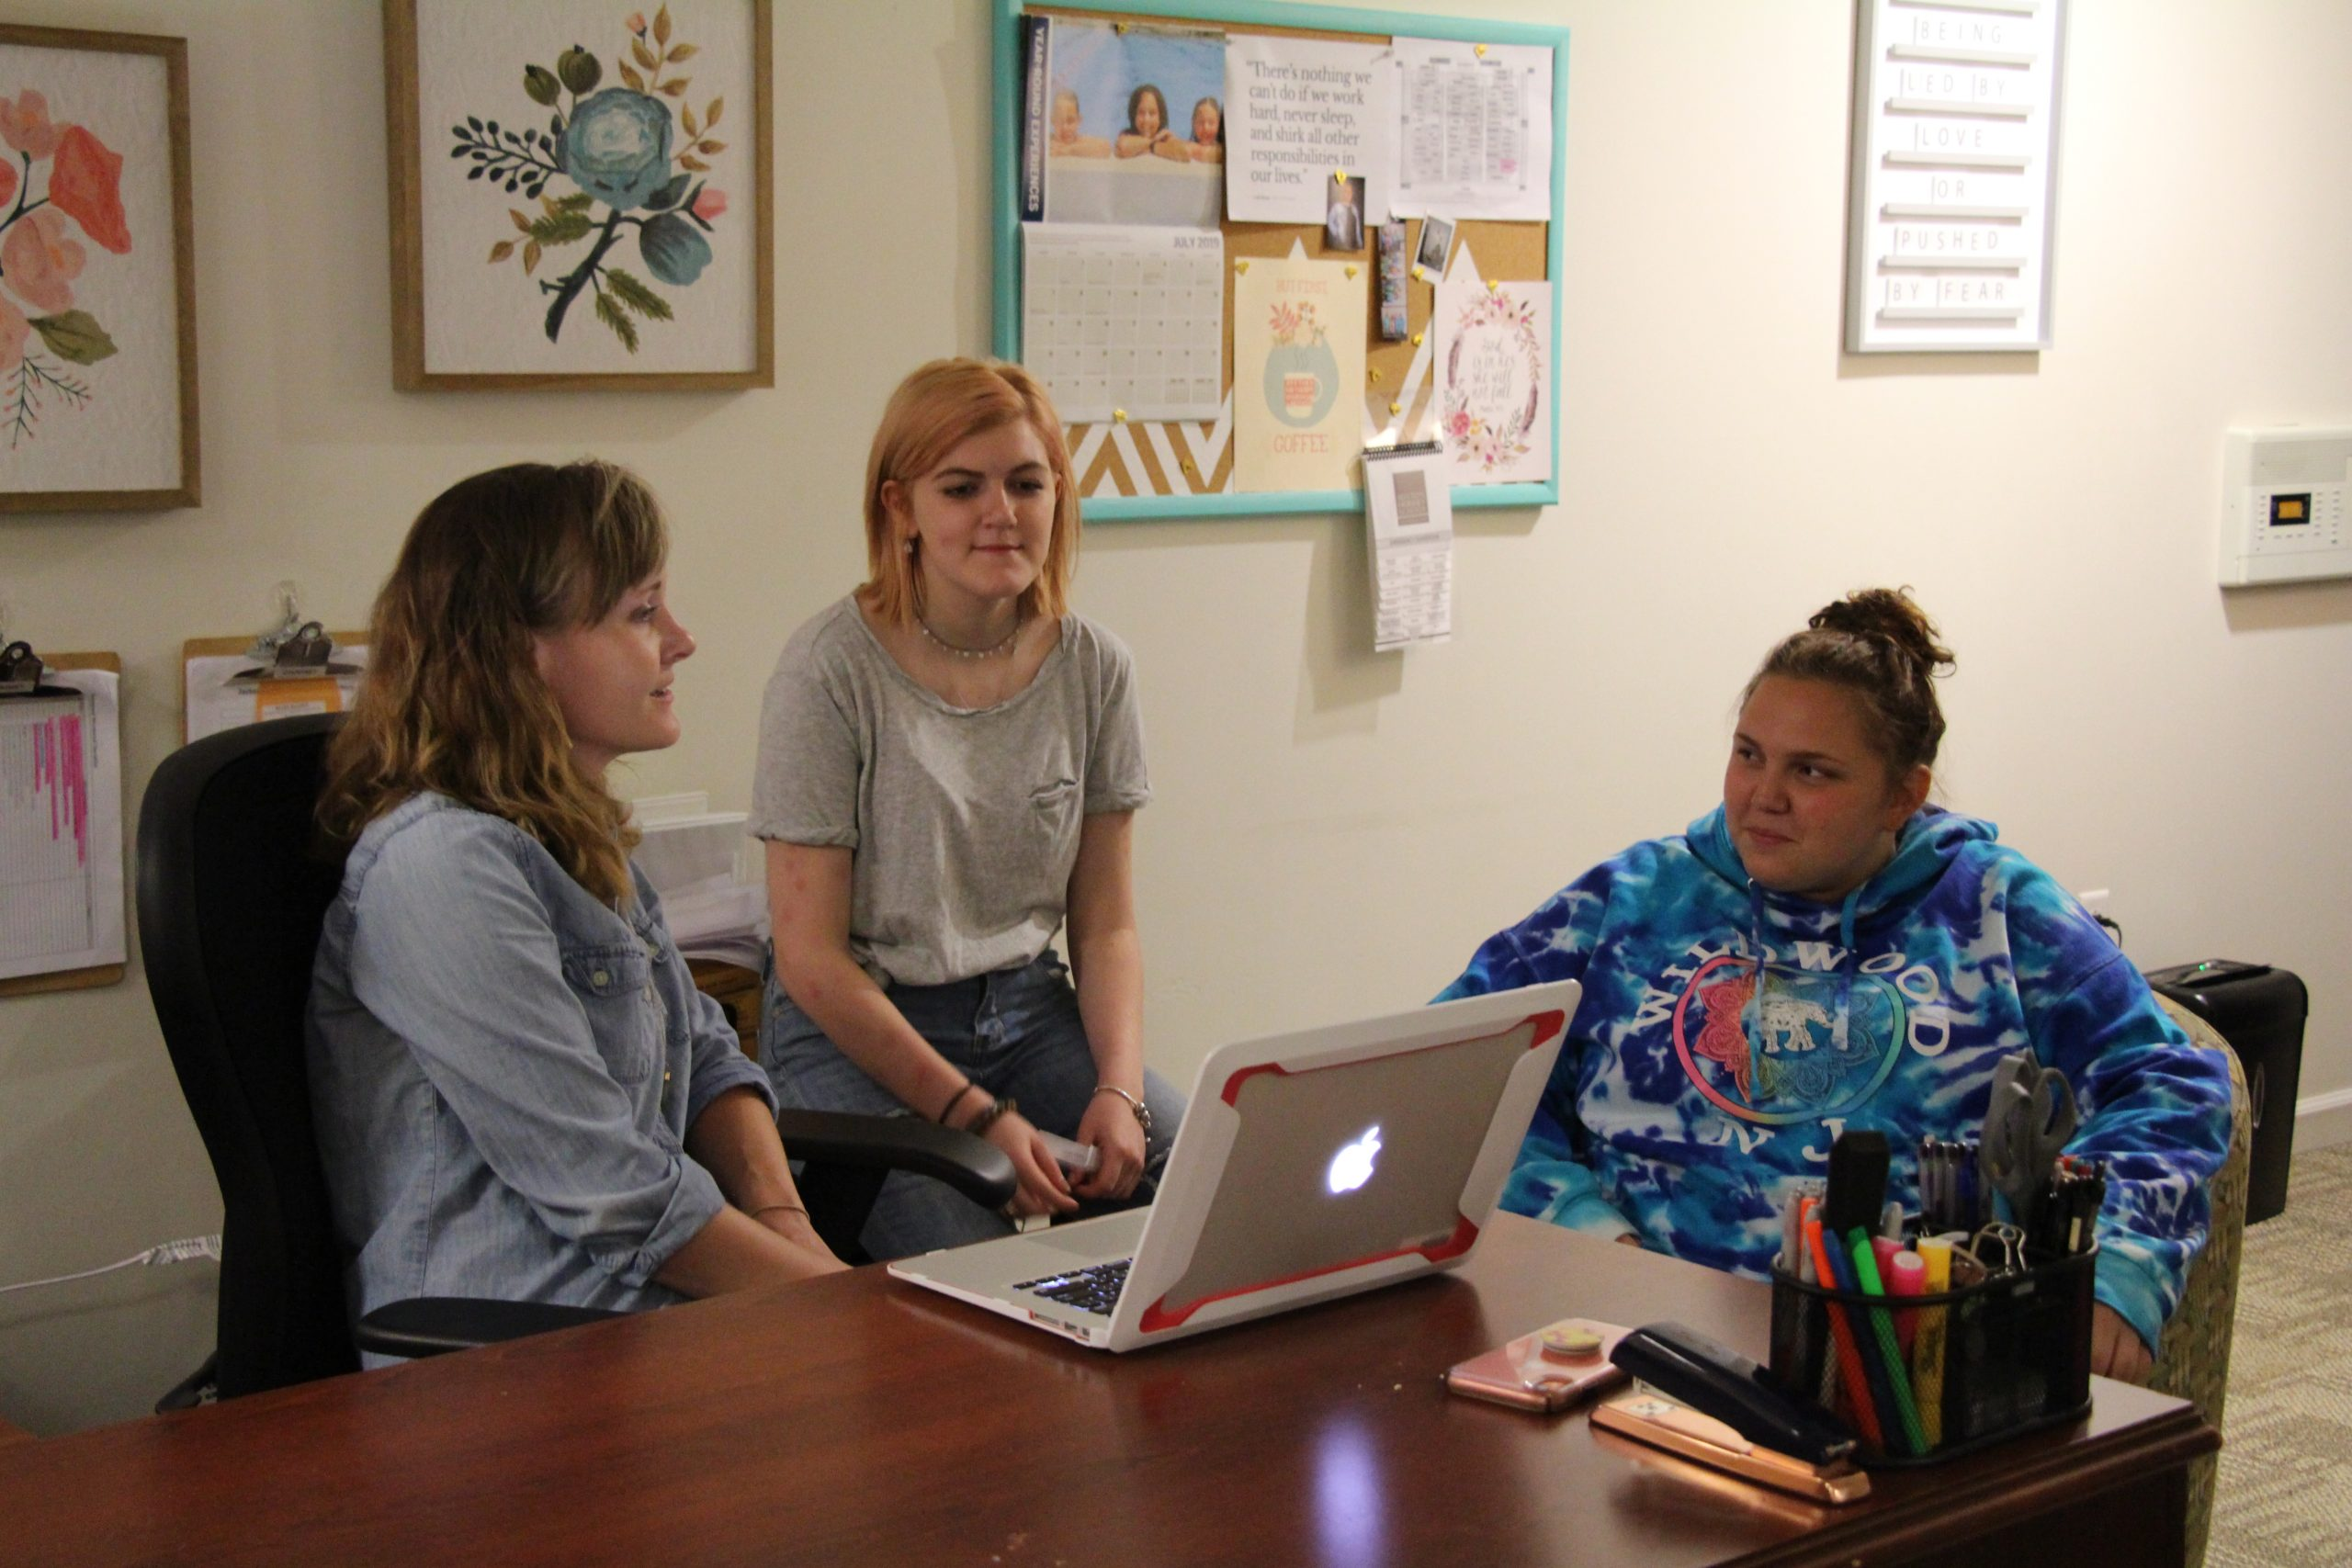 Milton Hershey School Transitional Living Coordinator, Lindsey Young, meets with students to plan activities in the TL.